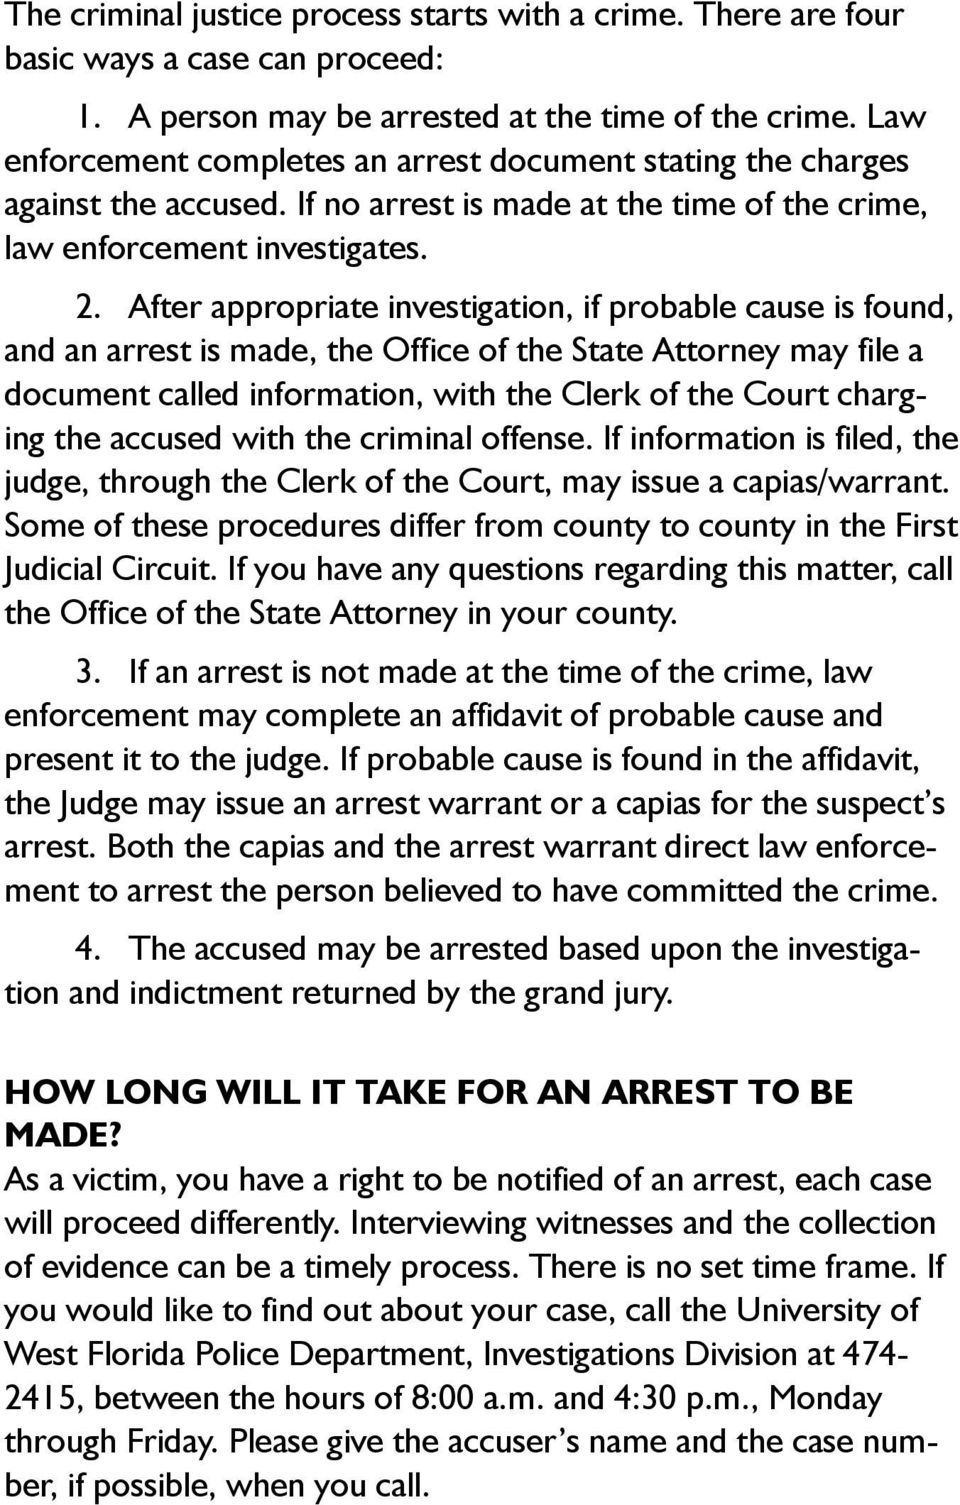 After appropriate investigation, if probable cause is found, and an arrest is made, the Office of the State Attorney may file a document called information, with the Clerk of the Court charging the